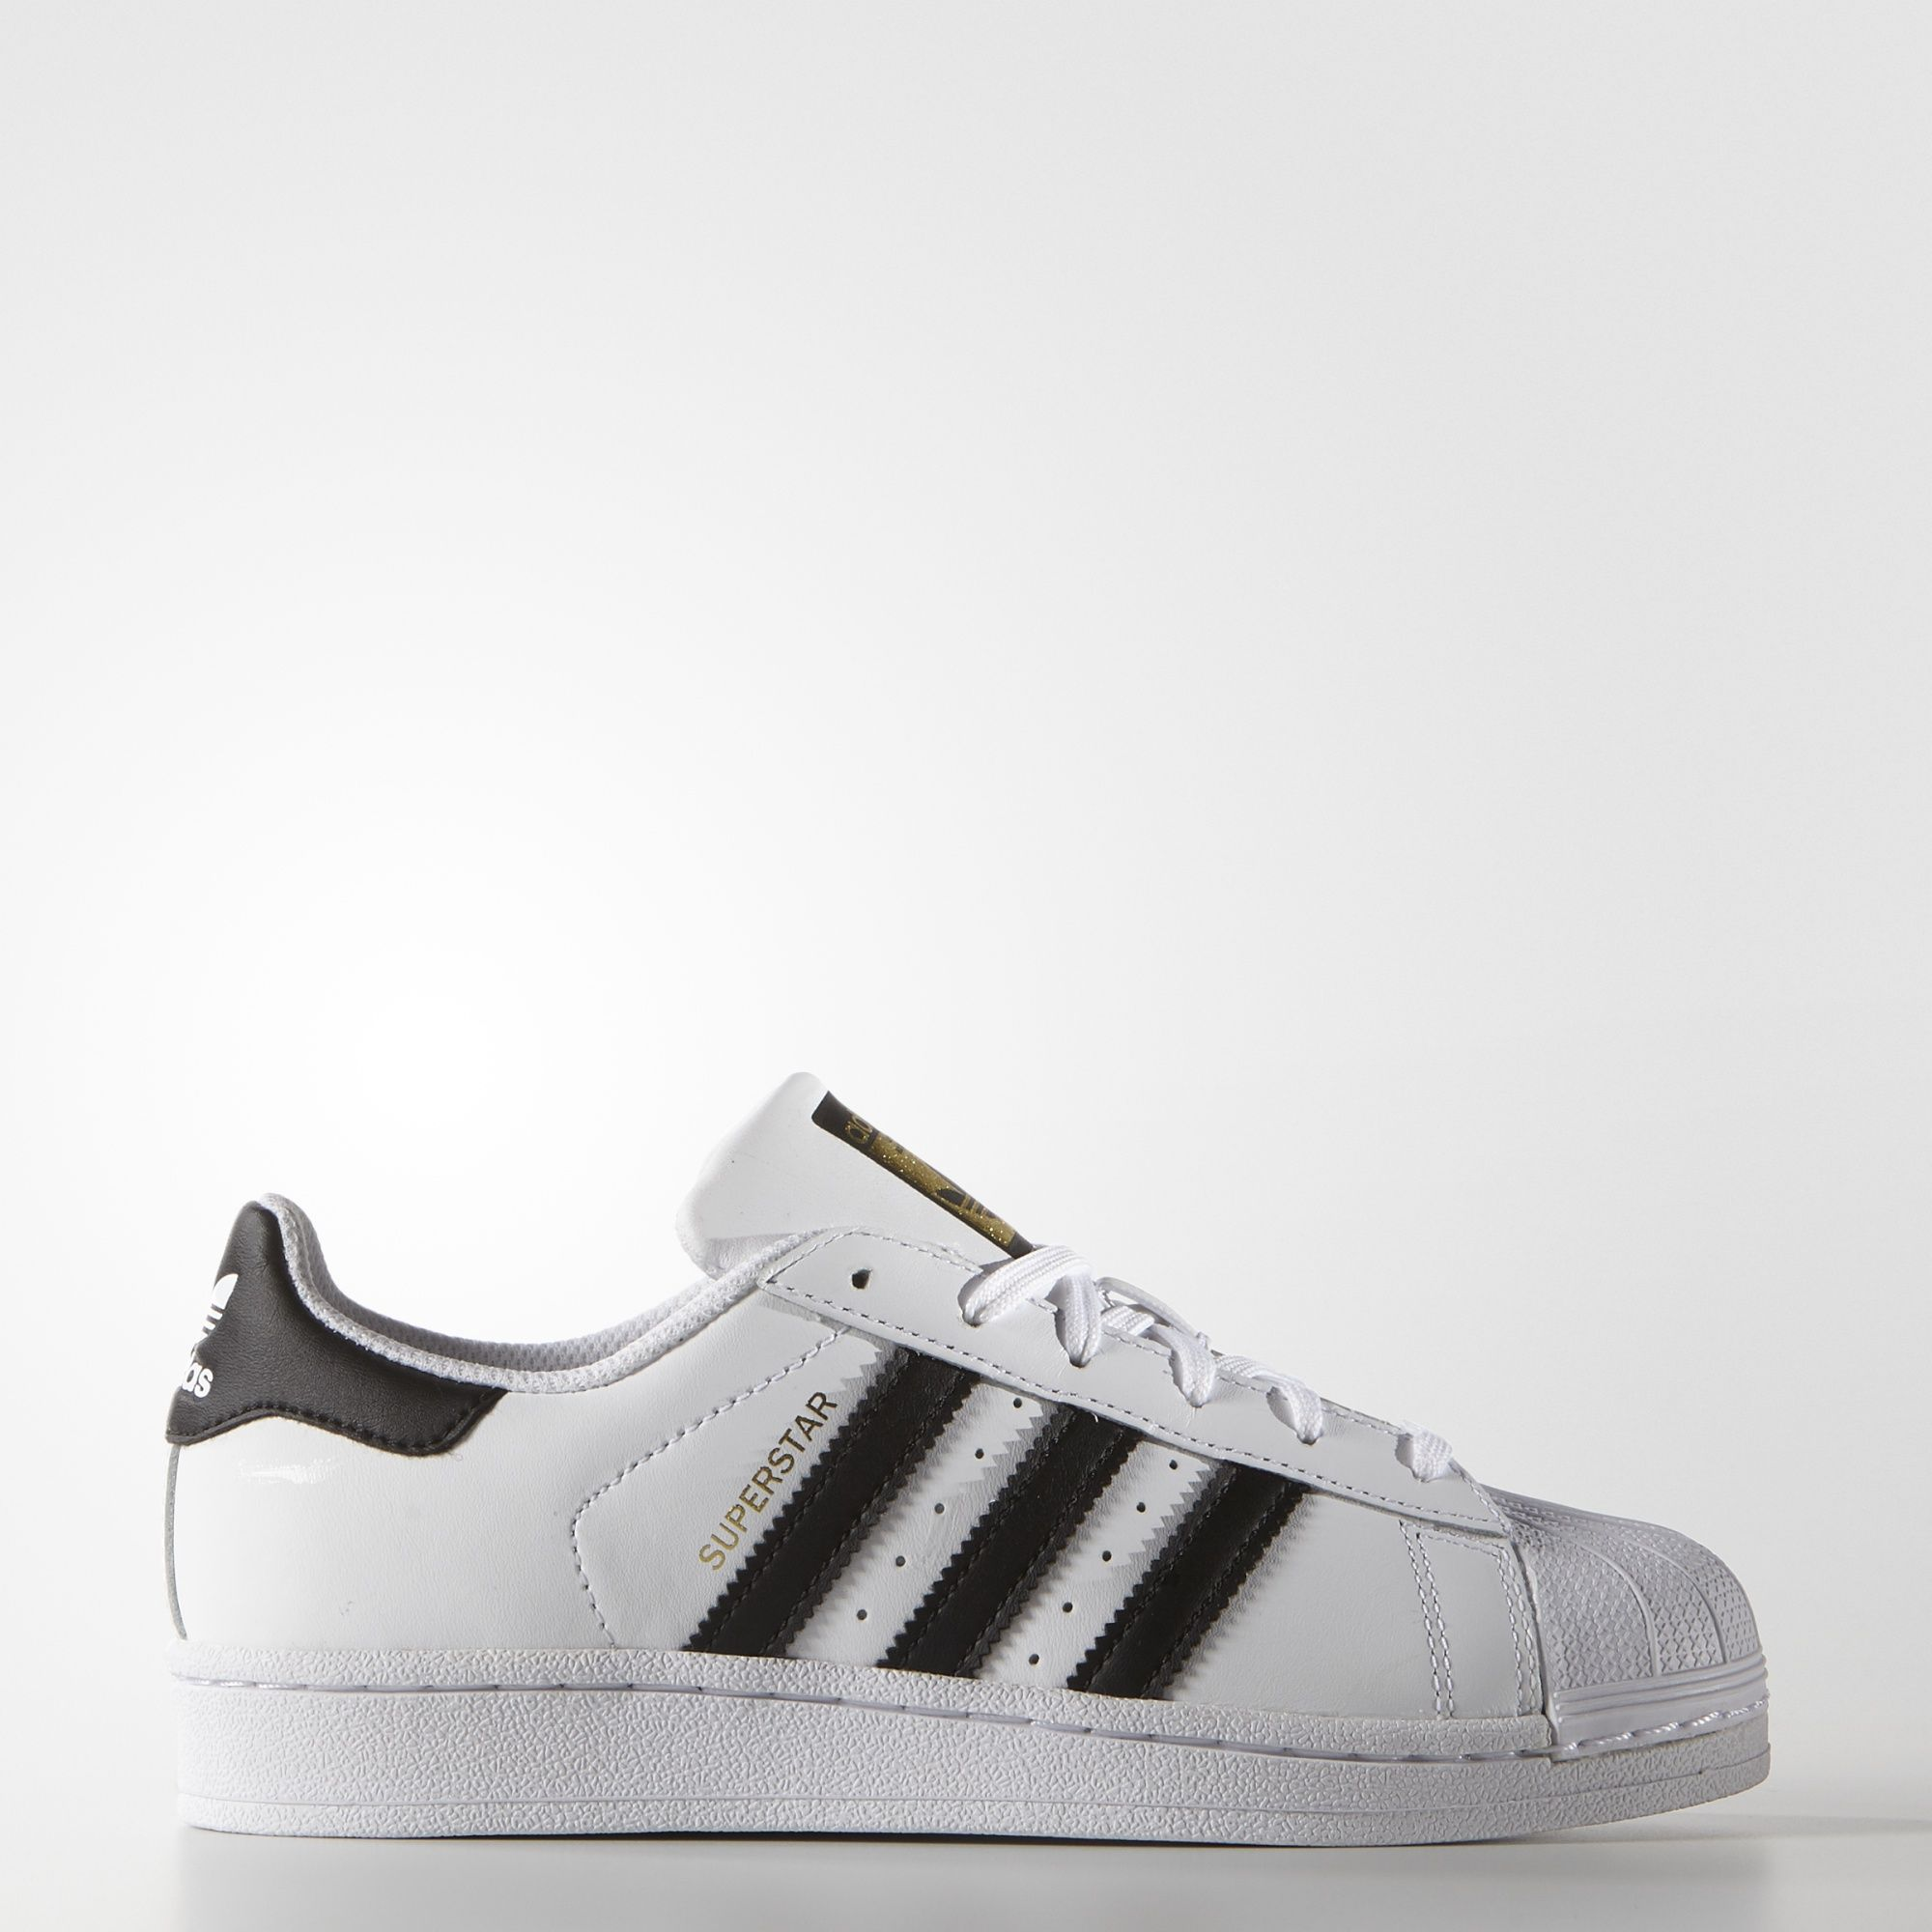 adidas nmd enfants, adidas - Chaussure Superstar Footwear White/Core Black C77154